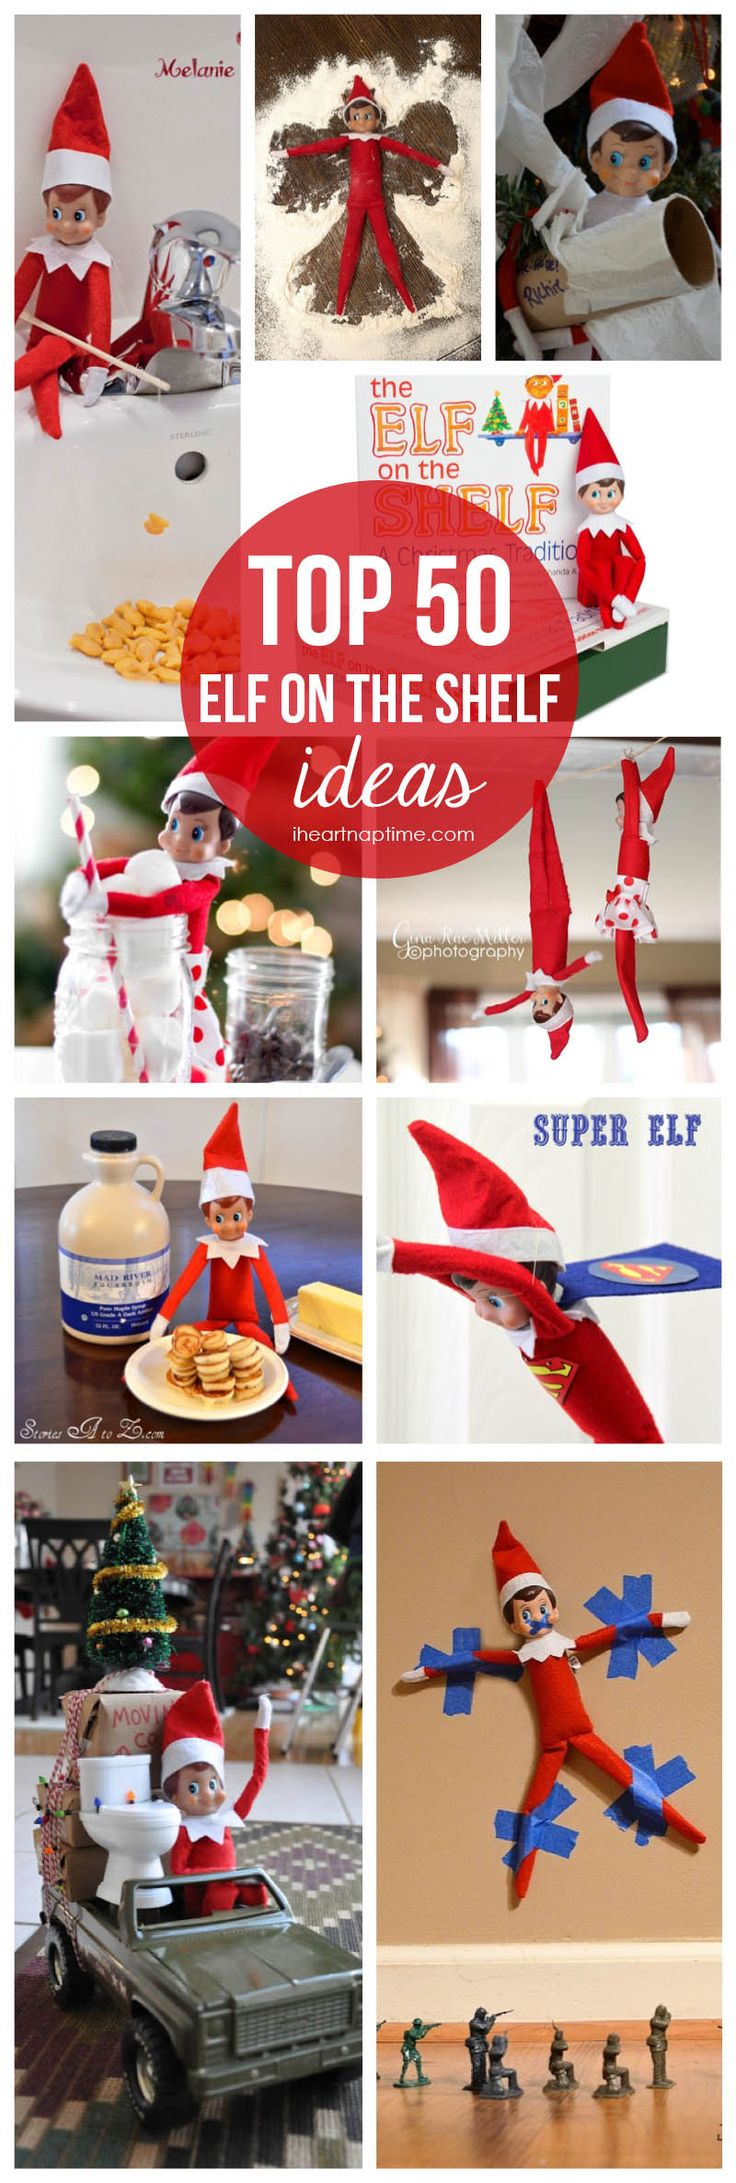 Top 50 Elf on the Shelf ideas on Pinterest! This is a must see list! #Christmas #ElfontheShelf